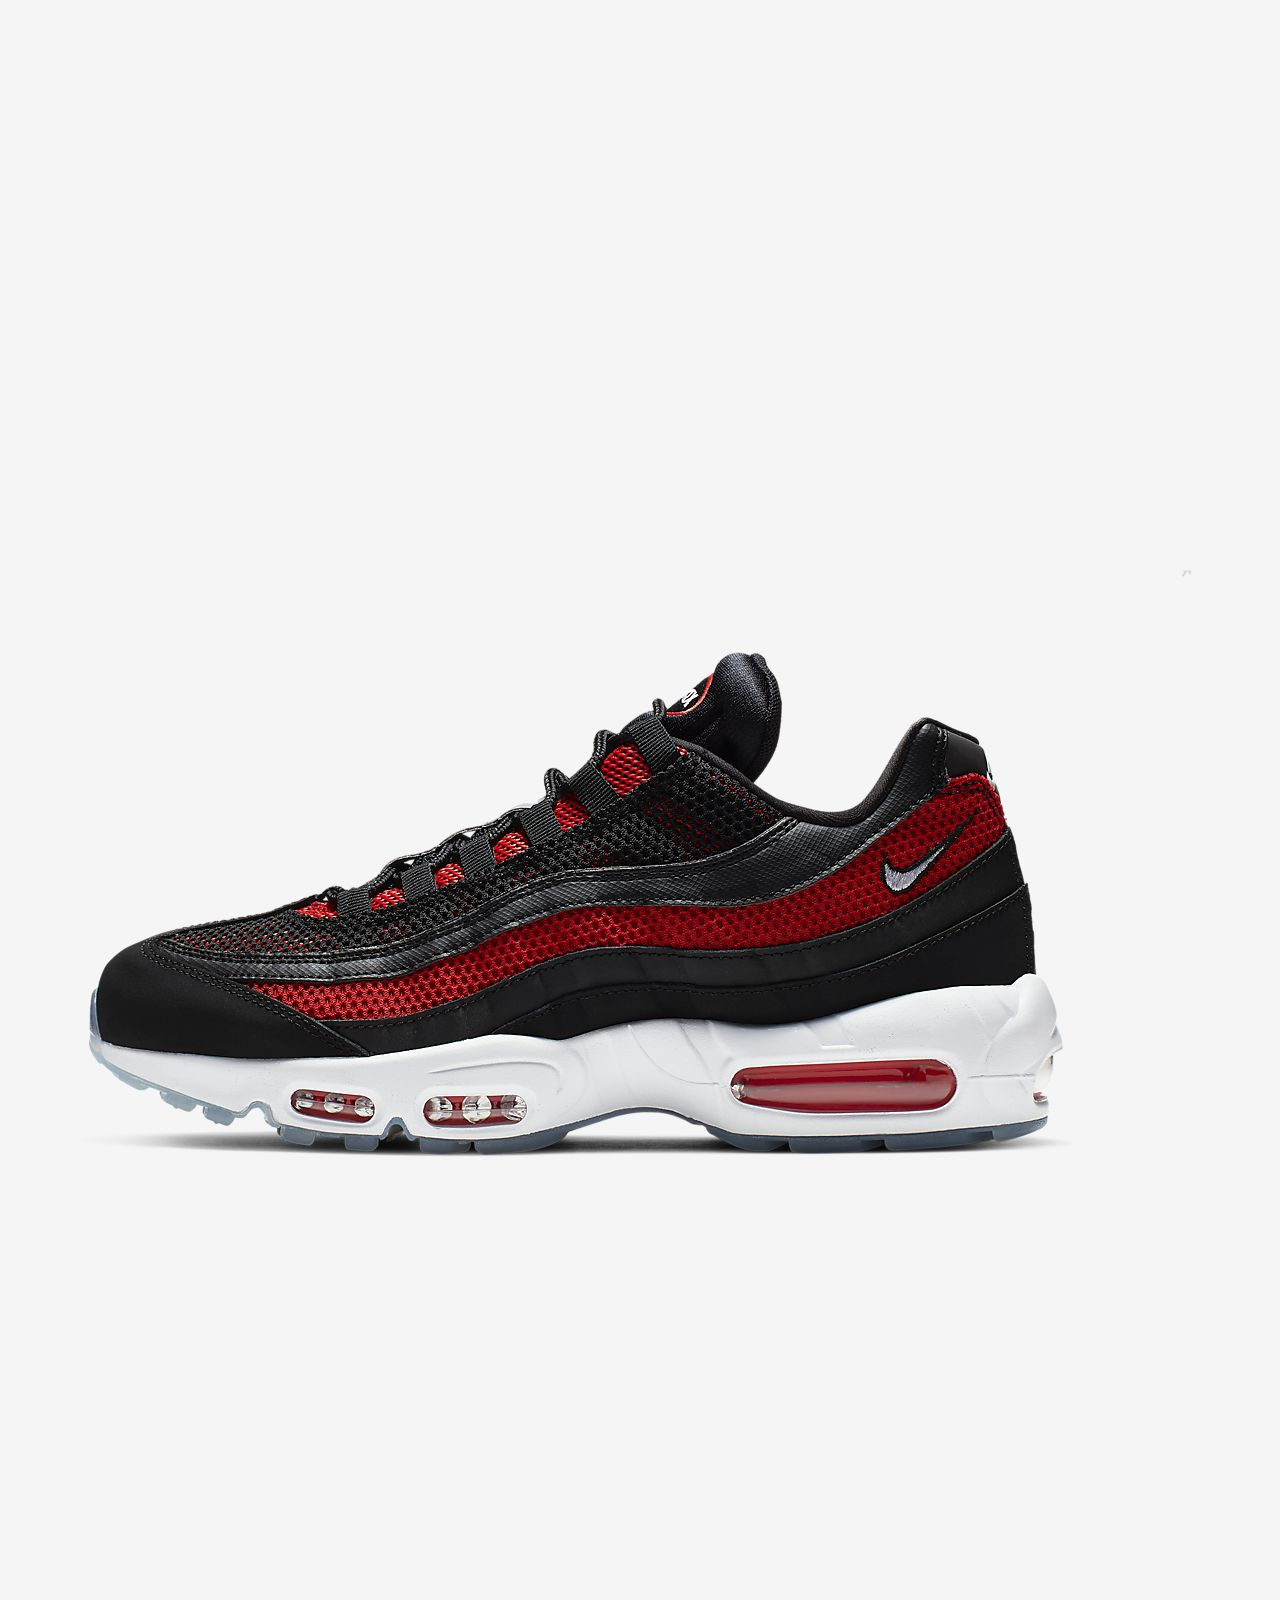 wholesale dealer 4d519 1fe09 ... Chaussure Nike Air Max 95 Essential pour Homme